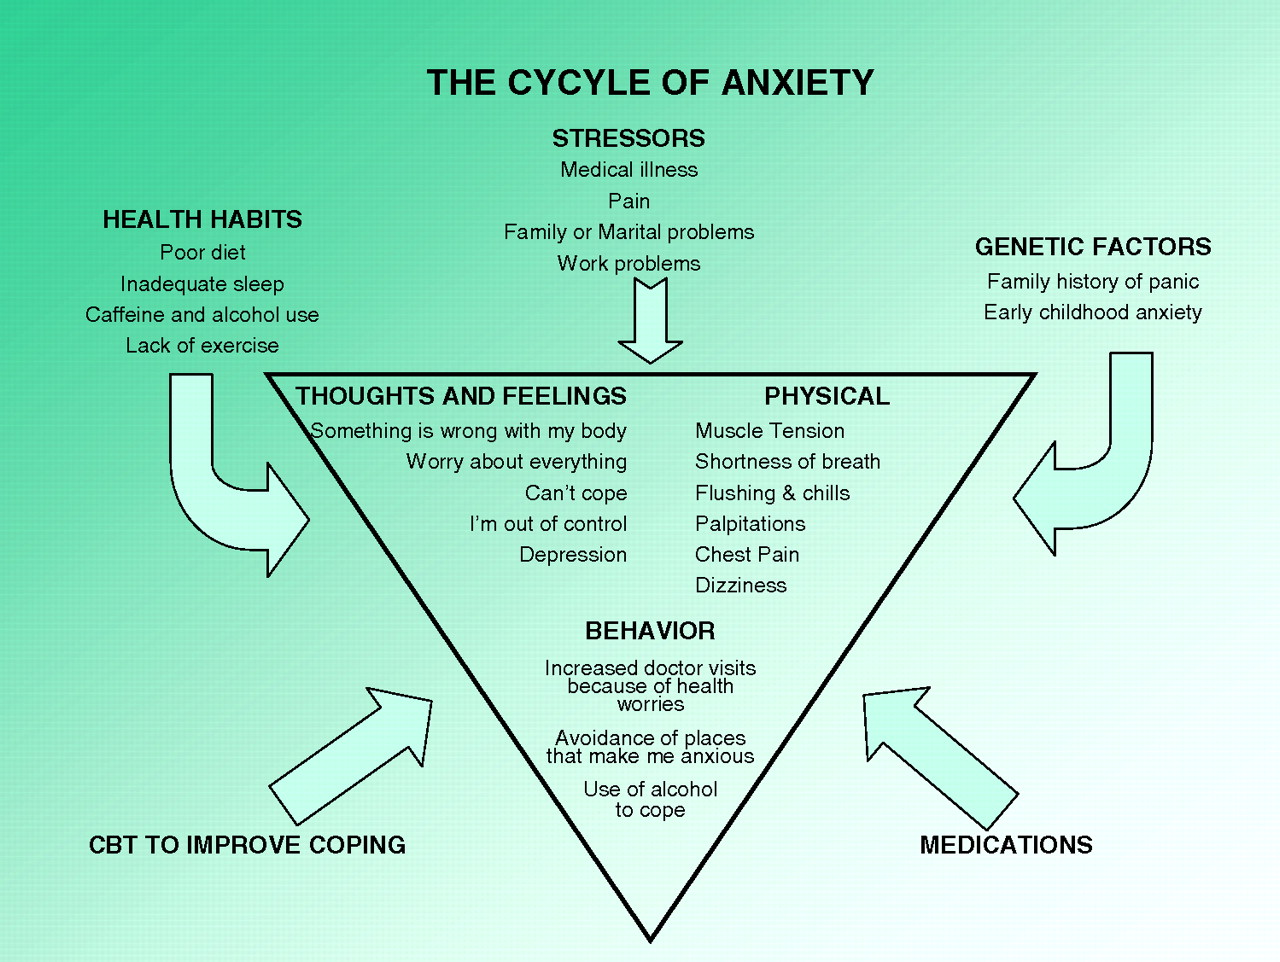 Brief Intervention For Anxiety In Primary Care Patients